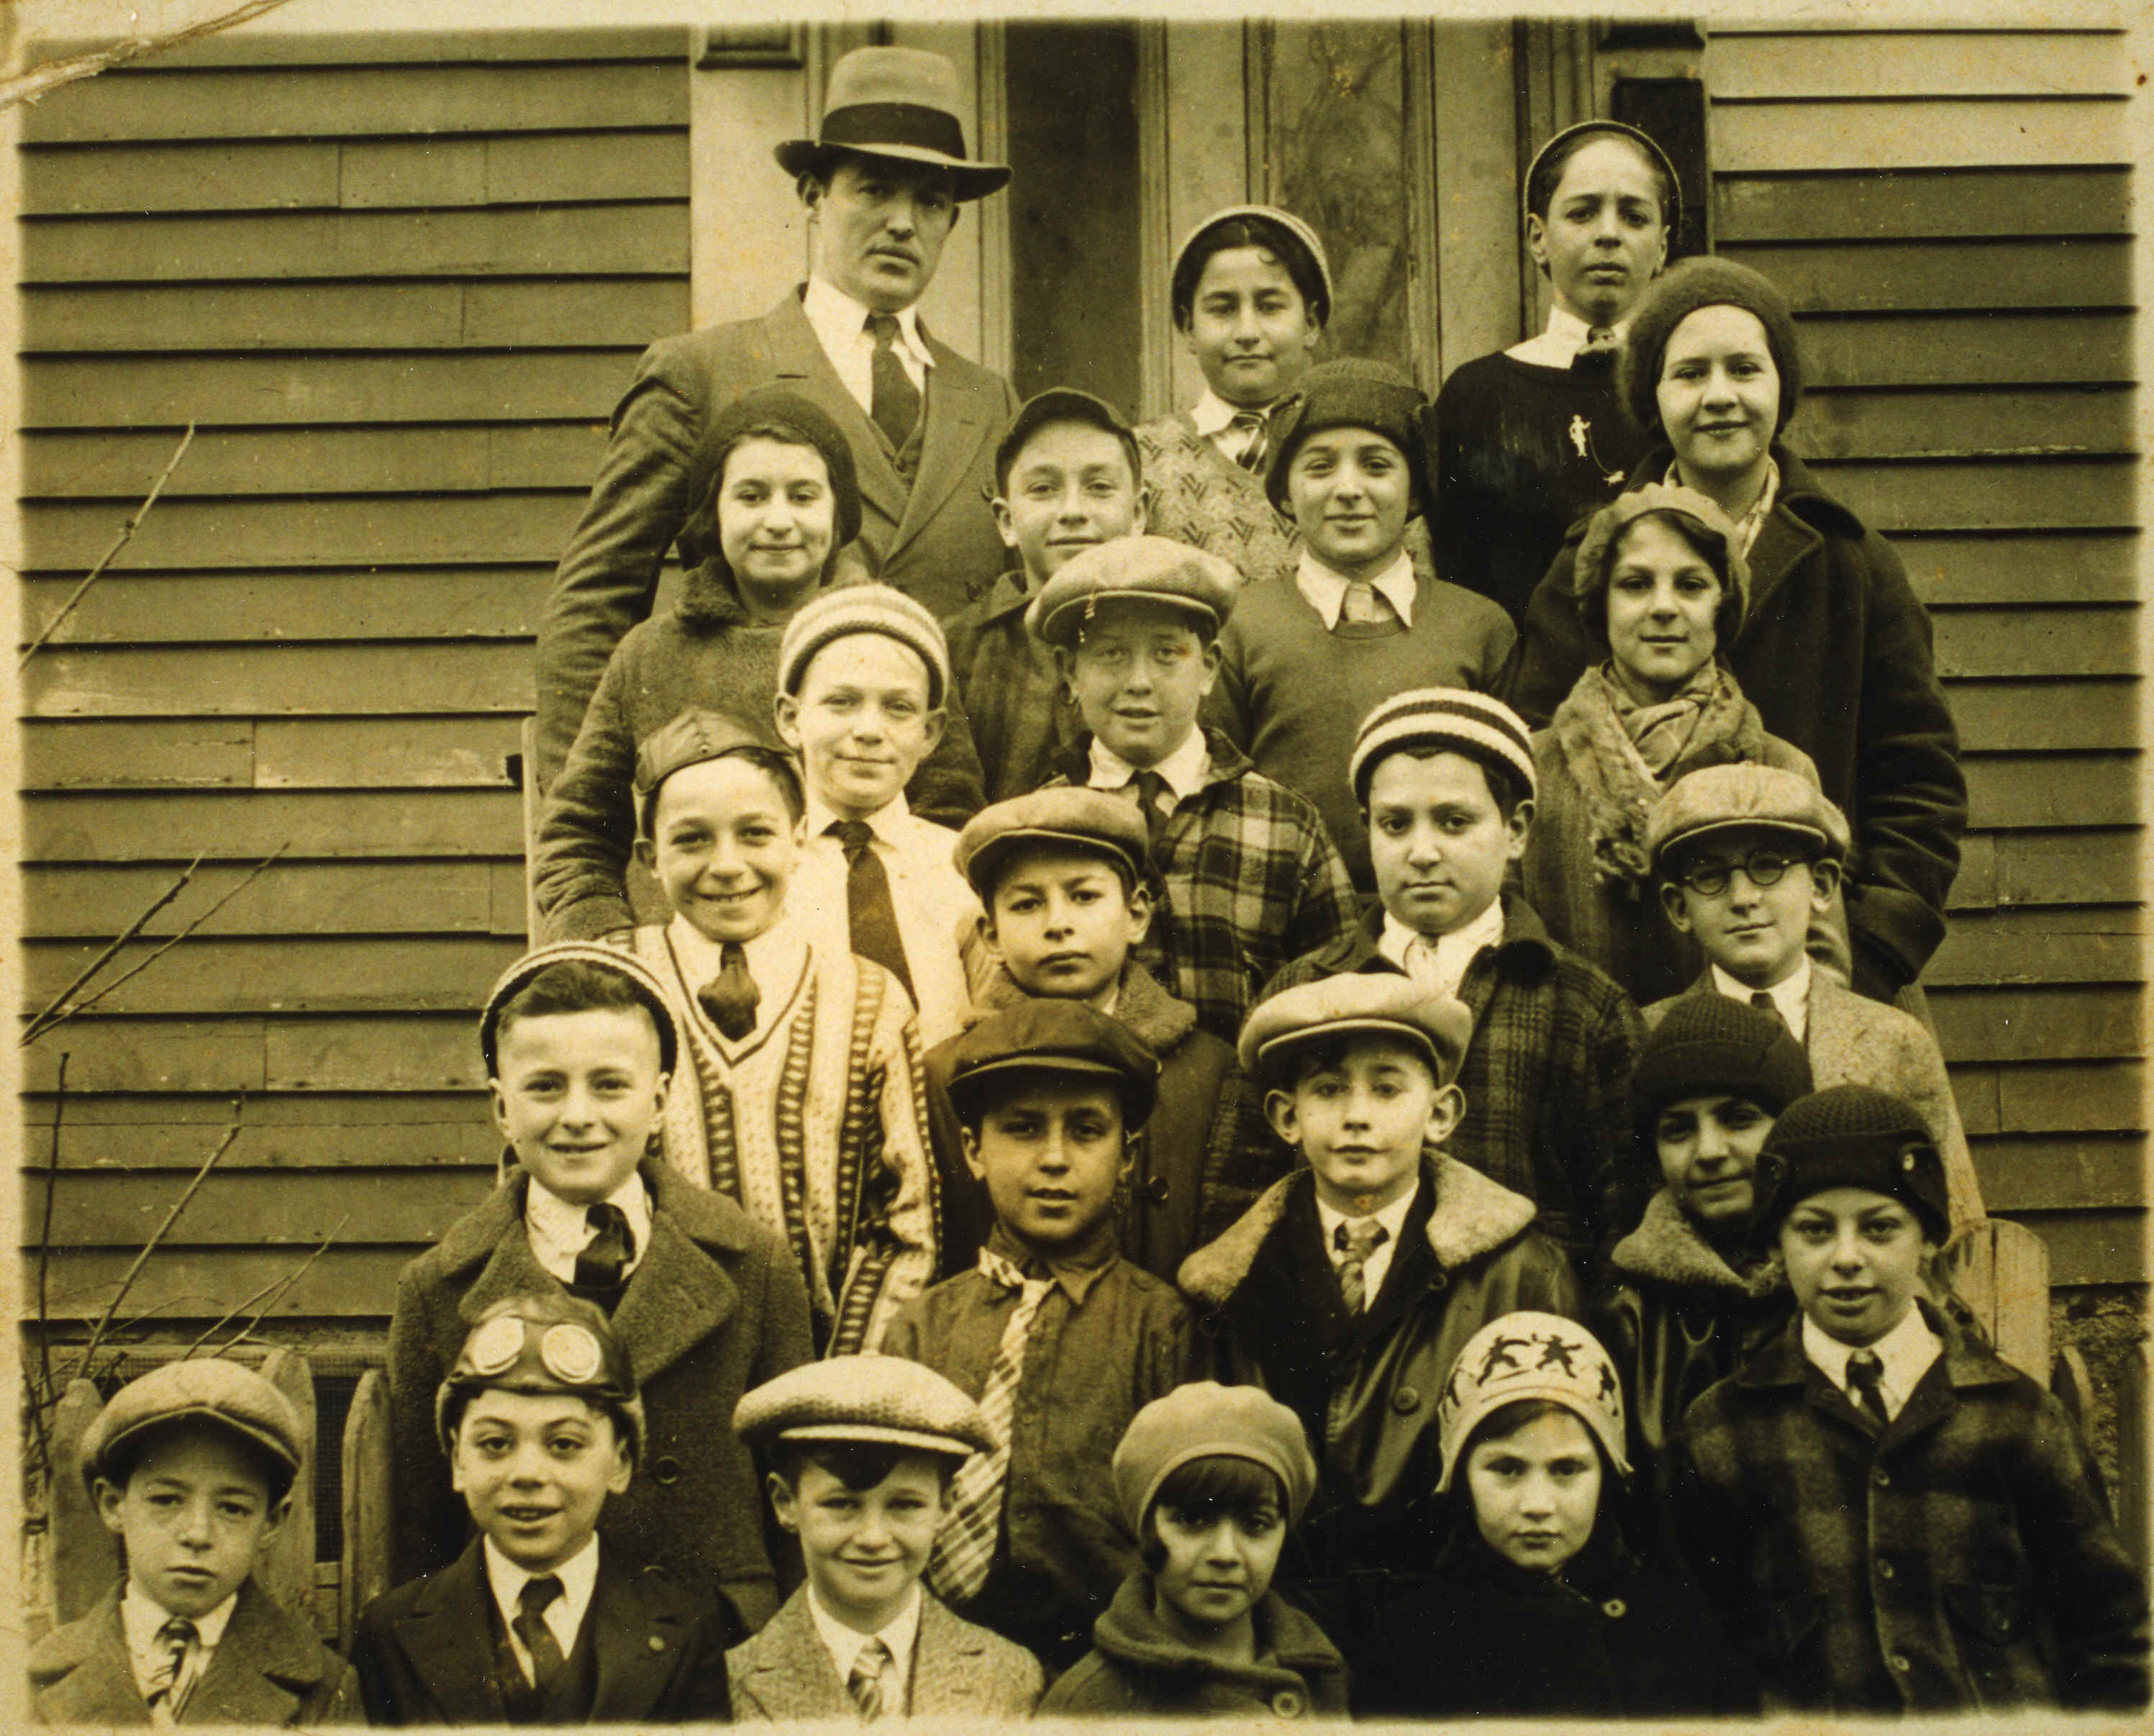 Chesed Shel Emes Hebrew class, 1929-1930